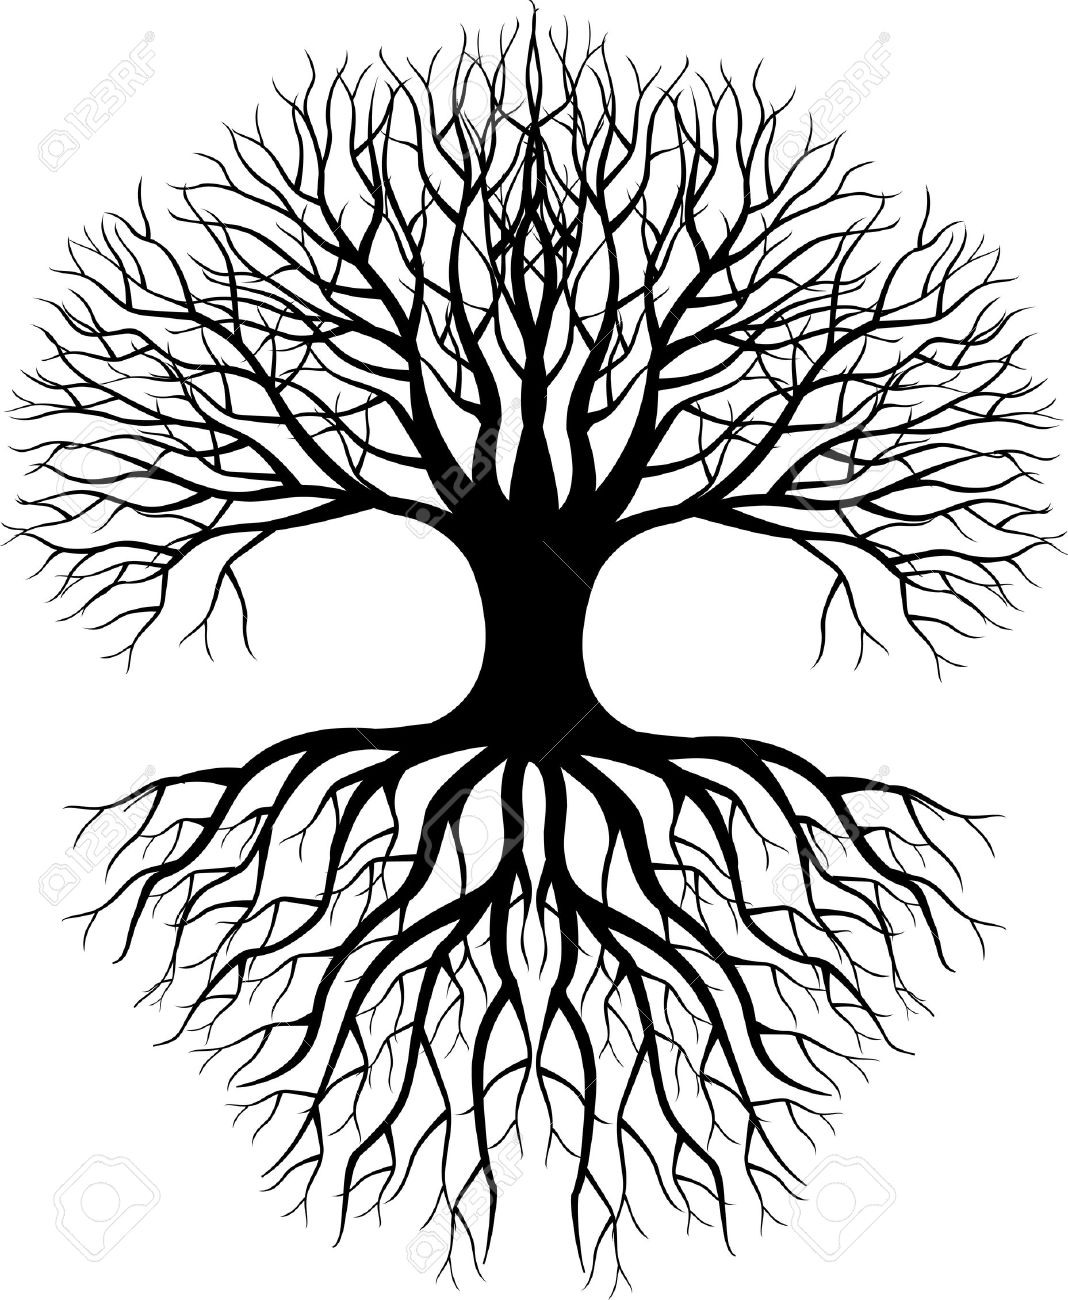 1068x1300 Tree Silhouette Royalty Free Cliparts, Vectors, And Stock